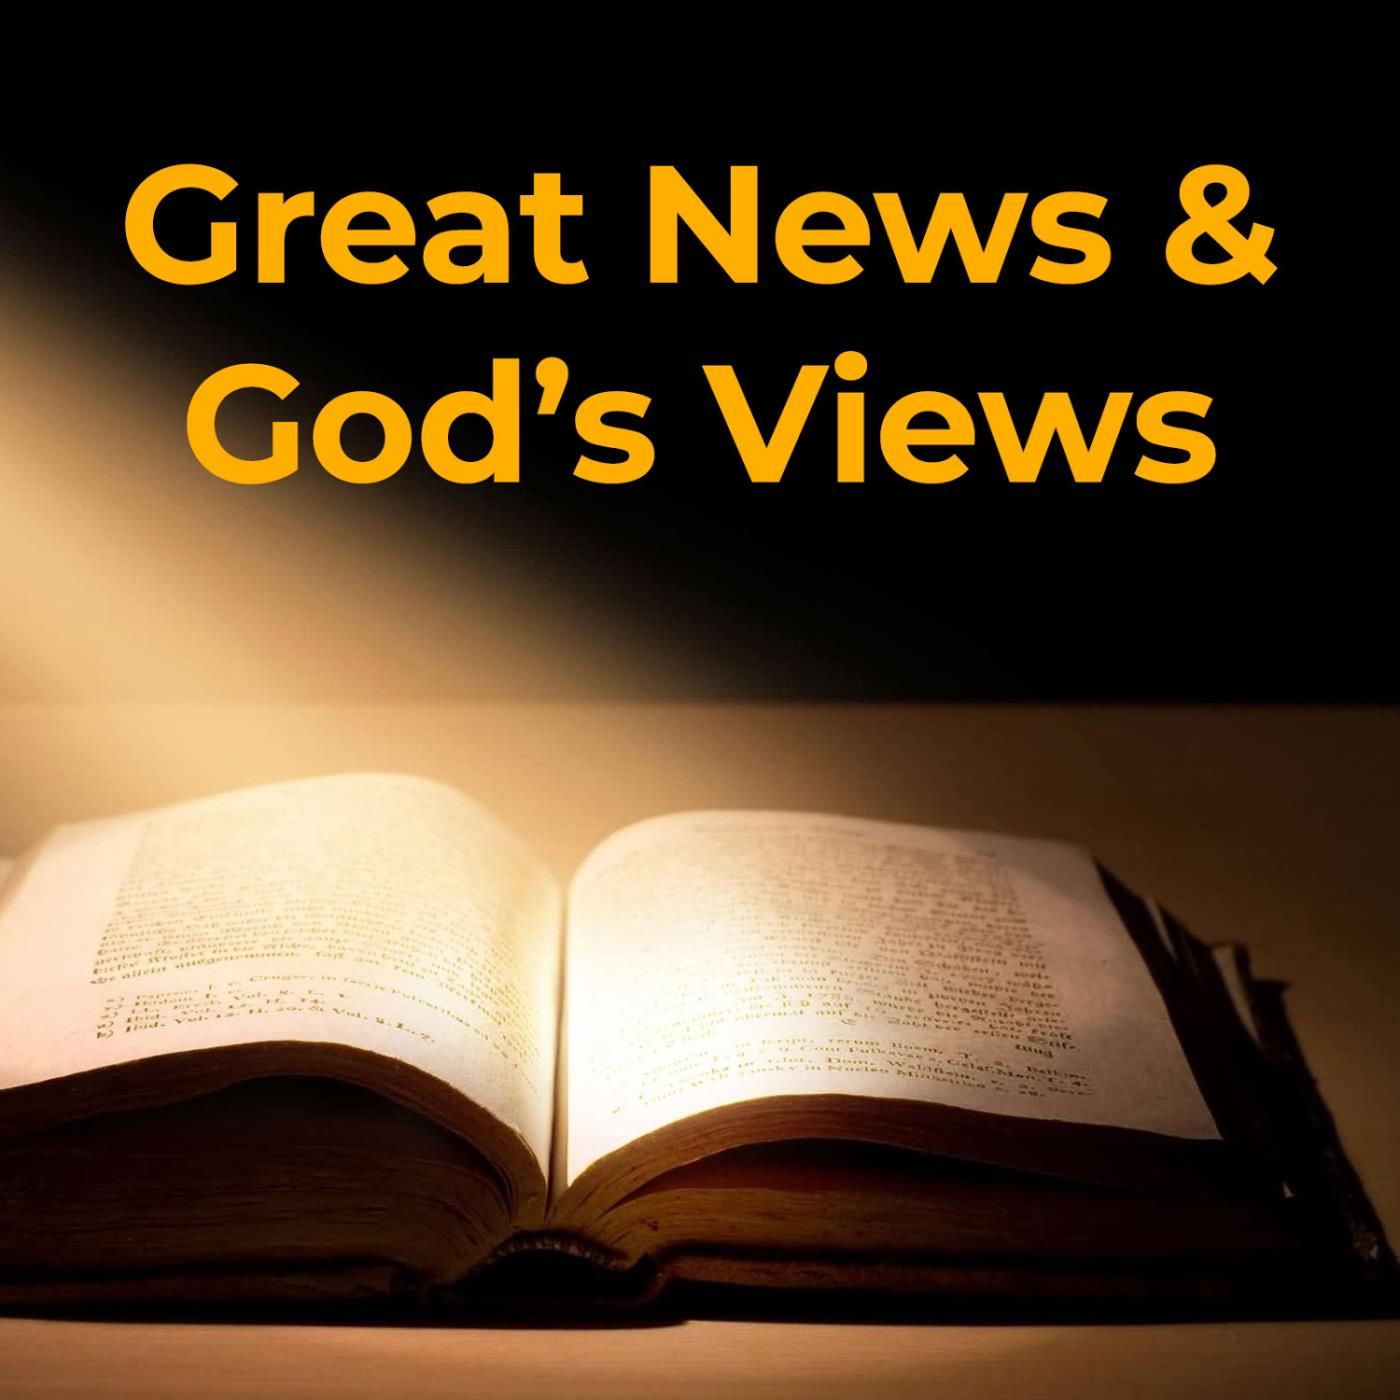 Great News and God's Views